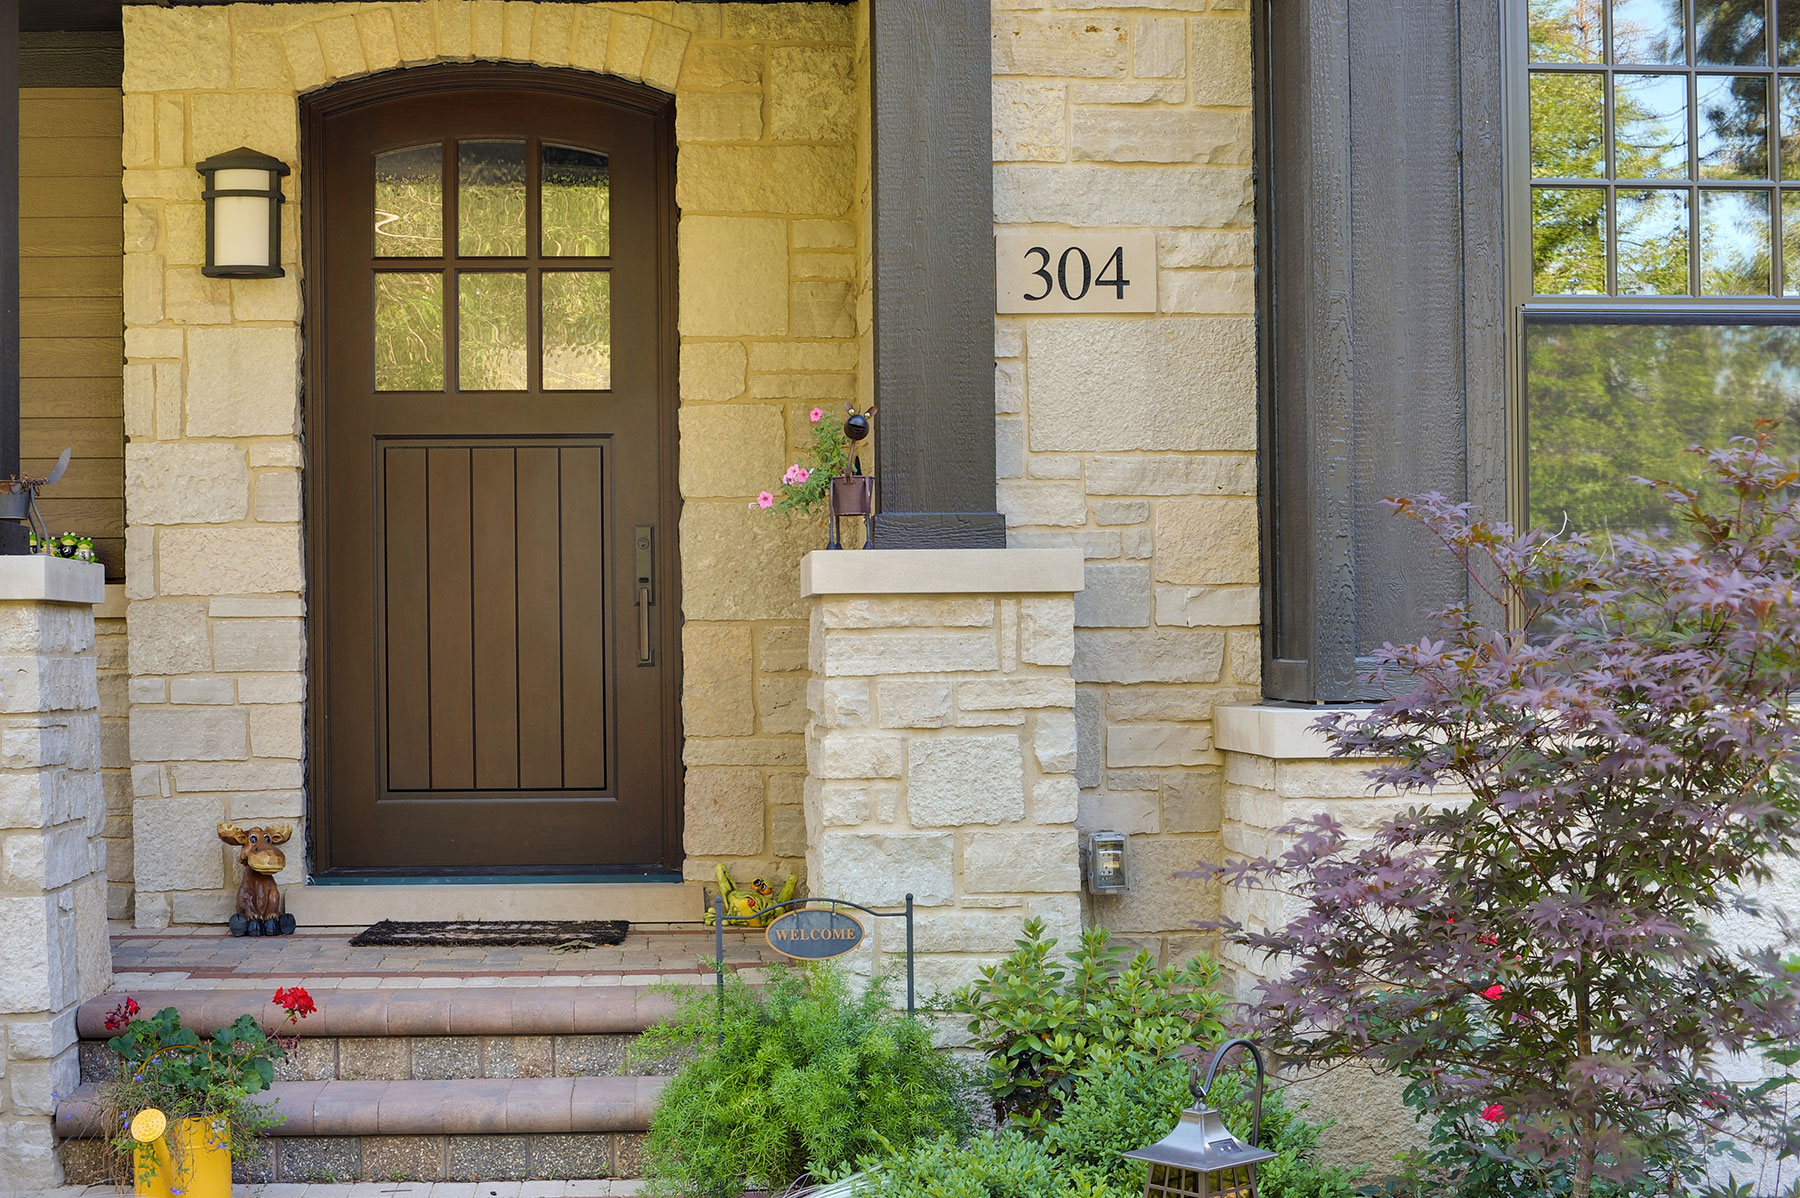 Custom Wood Front Entry Doors | solid wood front entry door in dark finish for high end home  - Glenview Doors - Custom Doors in Chicago